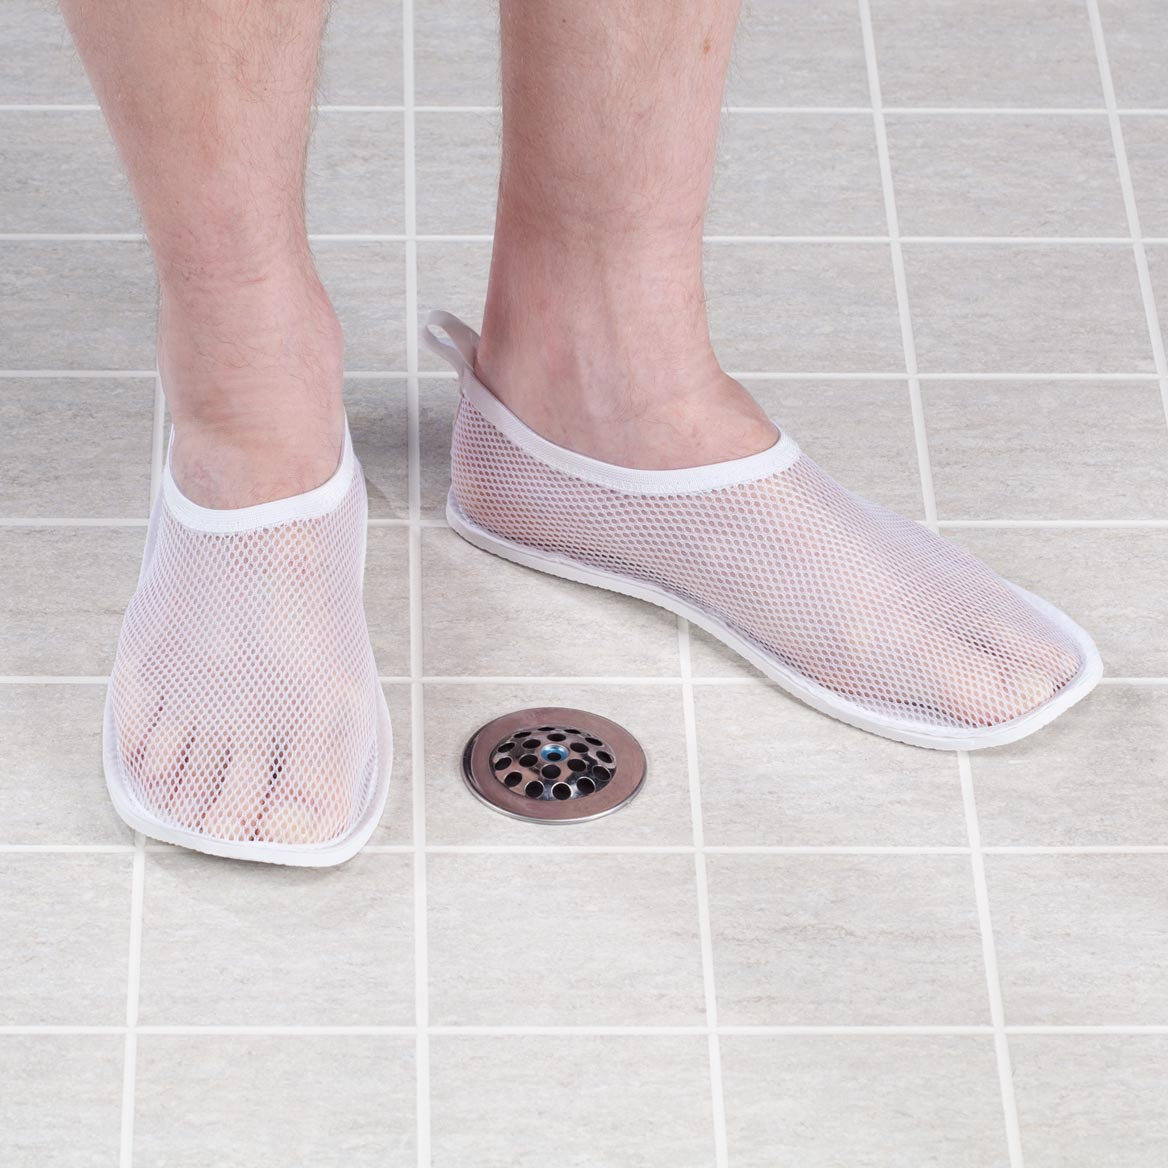 Mesh shower slippers mesh slippers shower shoes for Bathroom safety shower shoes